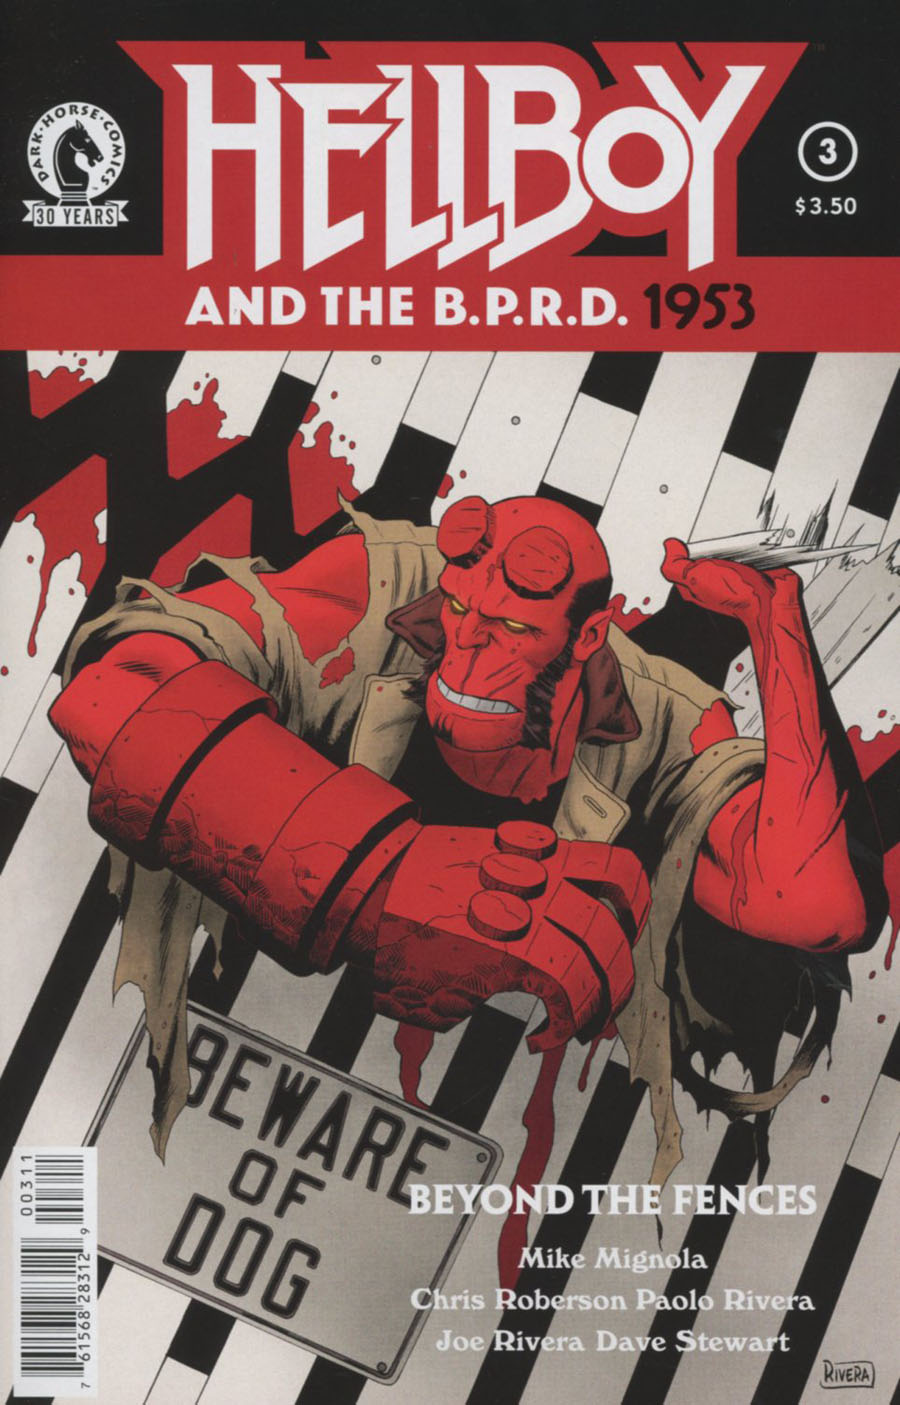 Hellboy And The BPRD 1953 Beyond The Fences #3